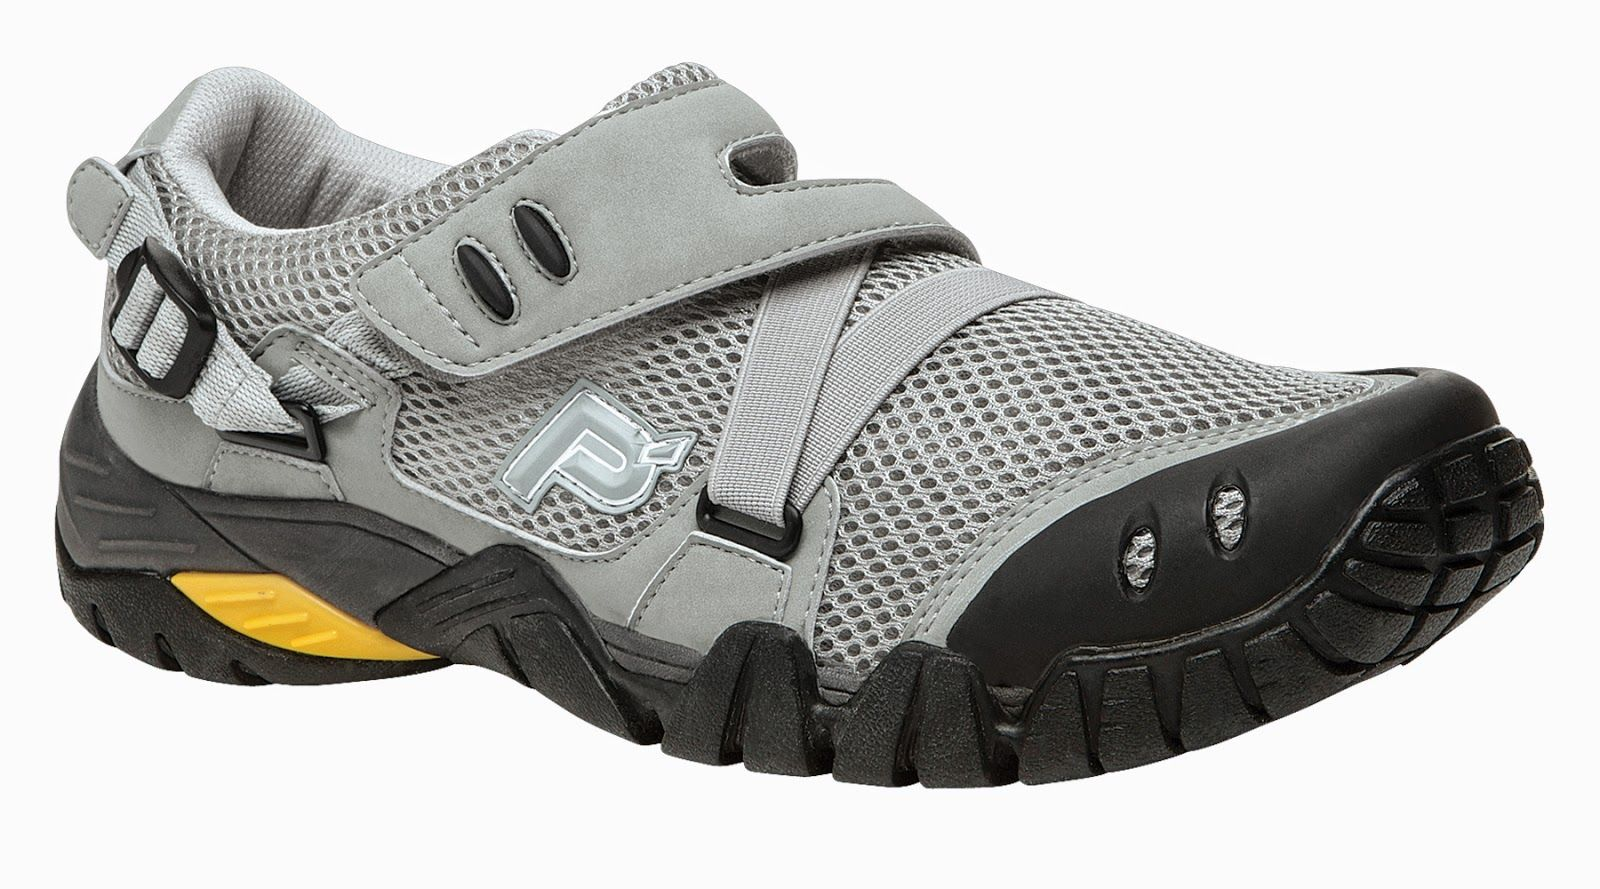 Where To Find Big Mens Large Water Shoes To Eeeee 5e Wide Good Work Boots Insulated Work Boots Shoes